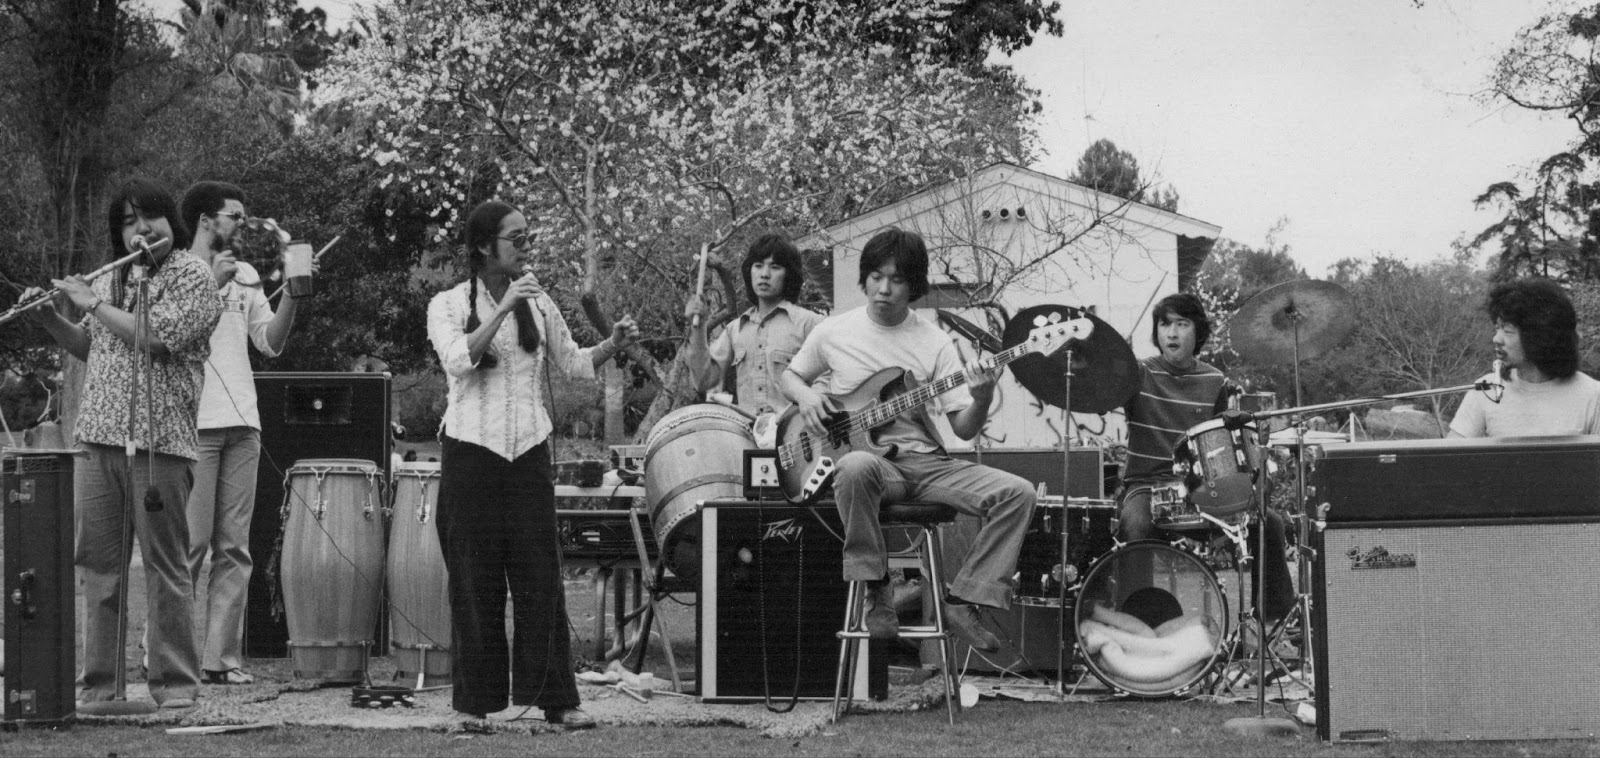 Warriors of the Rainbow band performing in Echo Park in 1978. An Asian American woman is singing into a microphone while five Asian American men and one Black man play instruments.